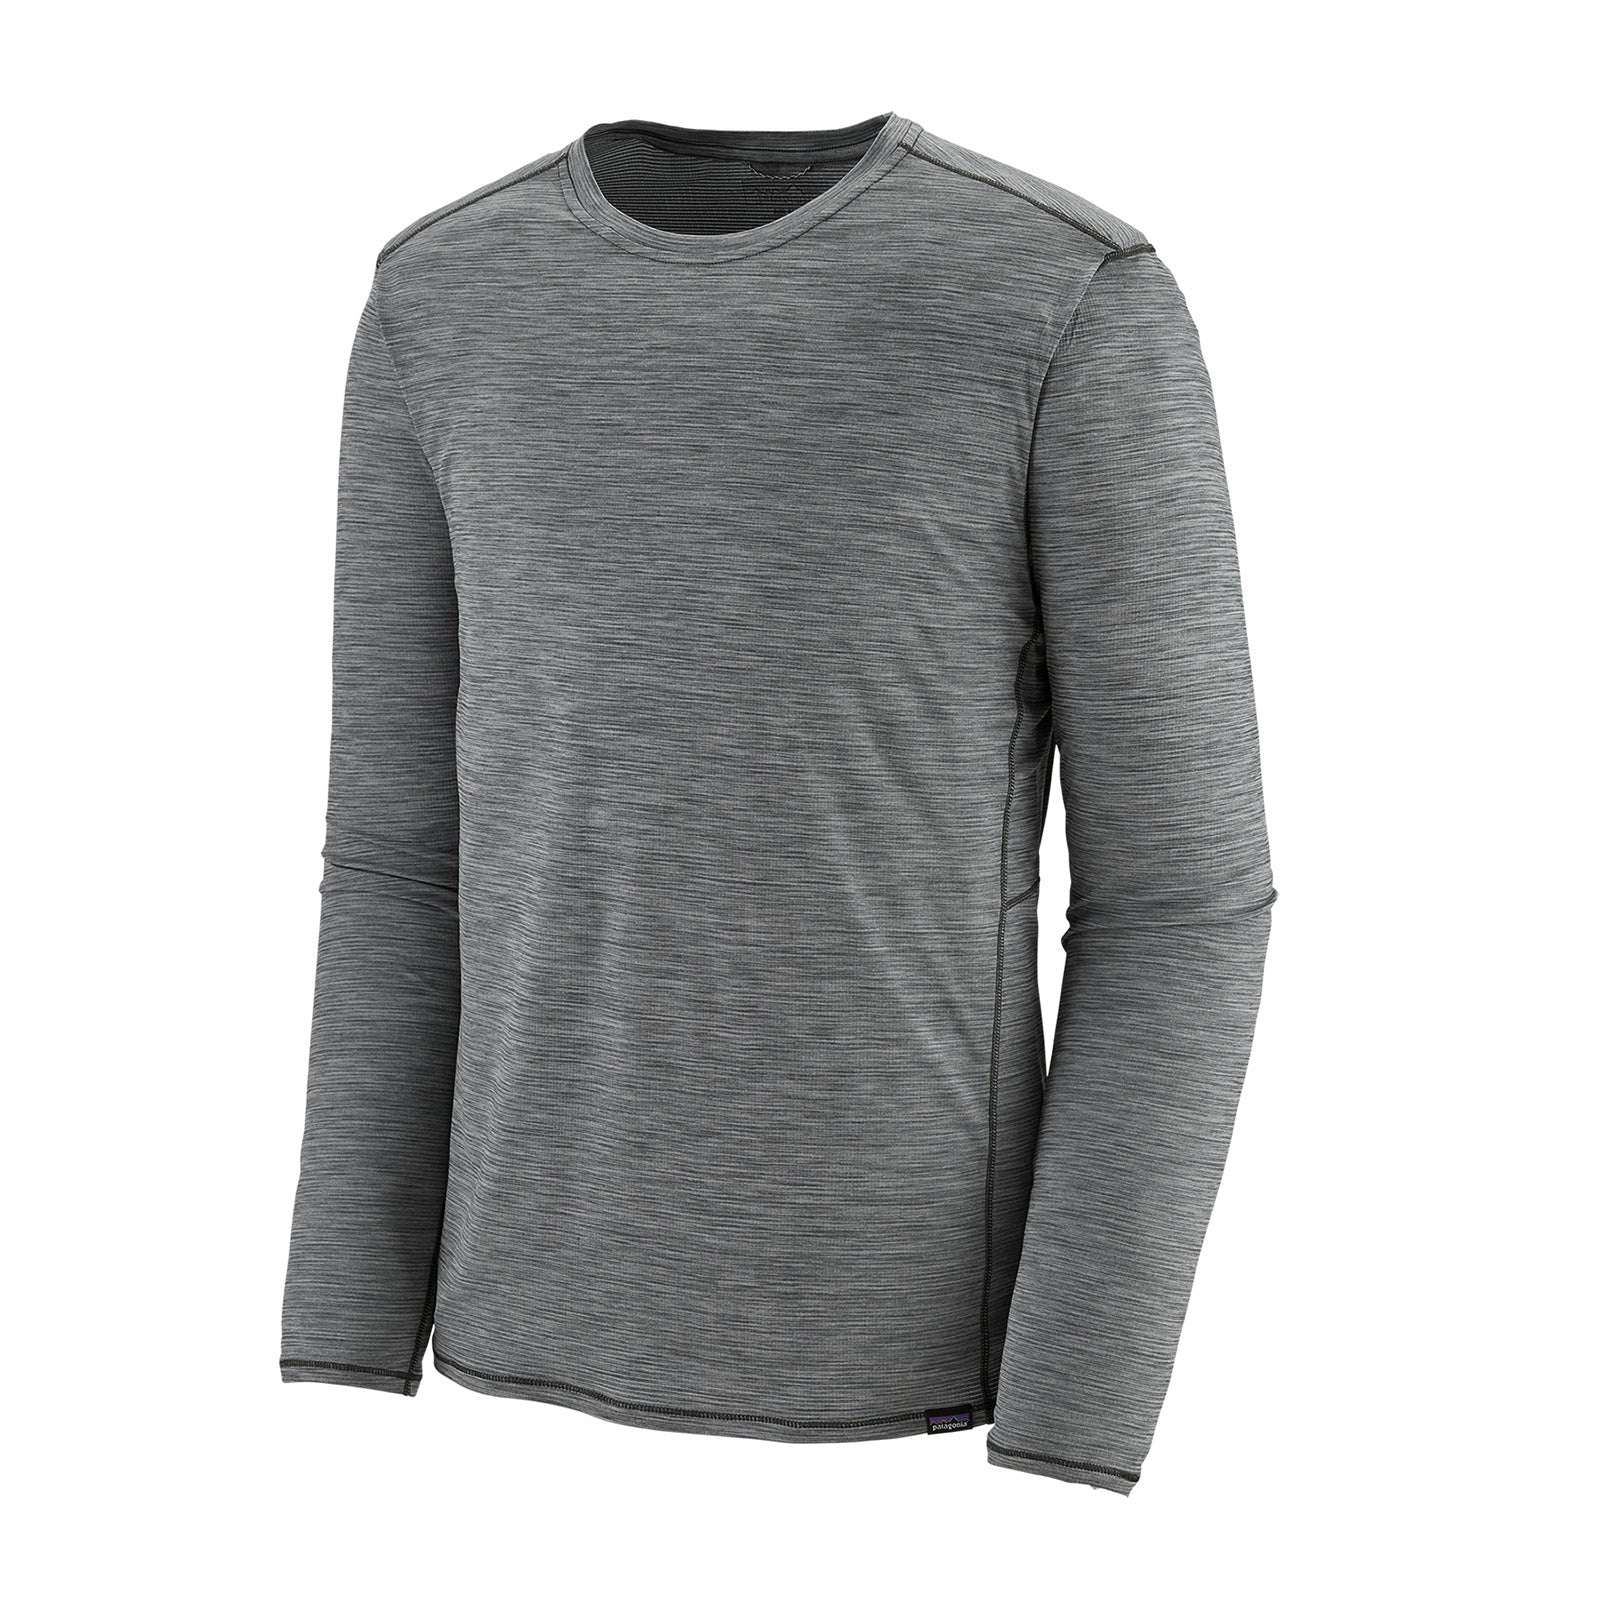 patagonia mens long sleeve capilene cool lightweight shirt in forge grey, front view